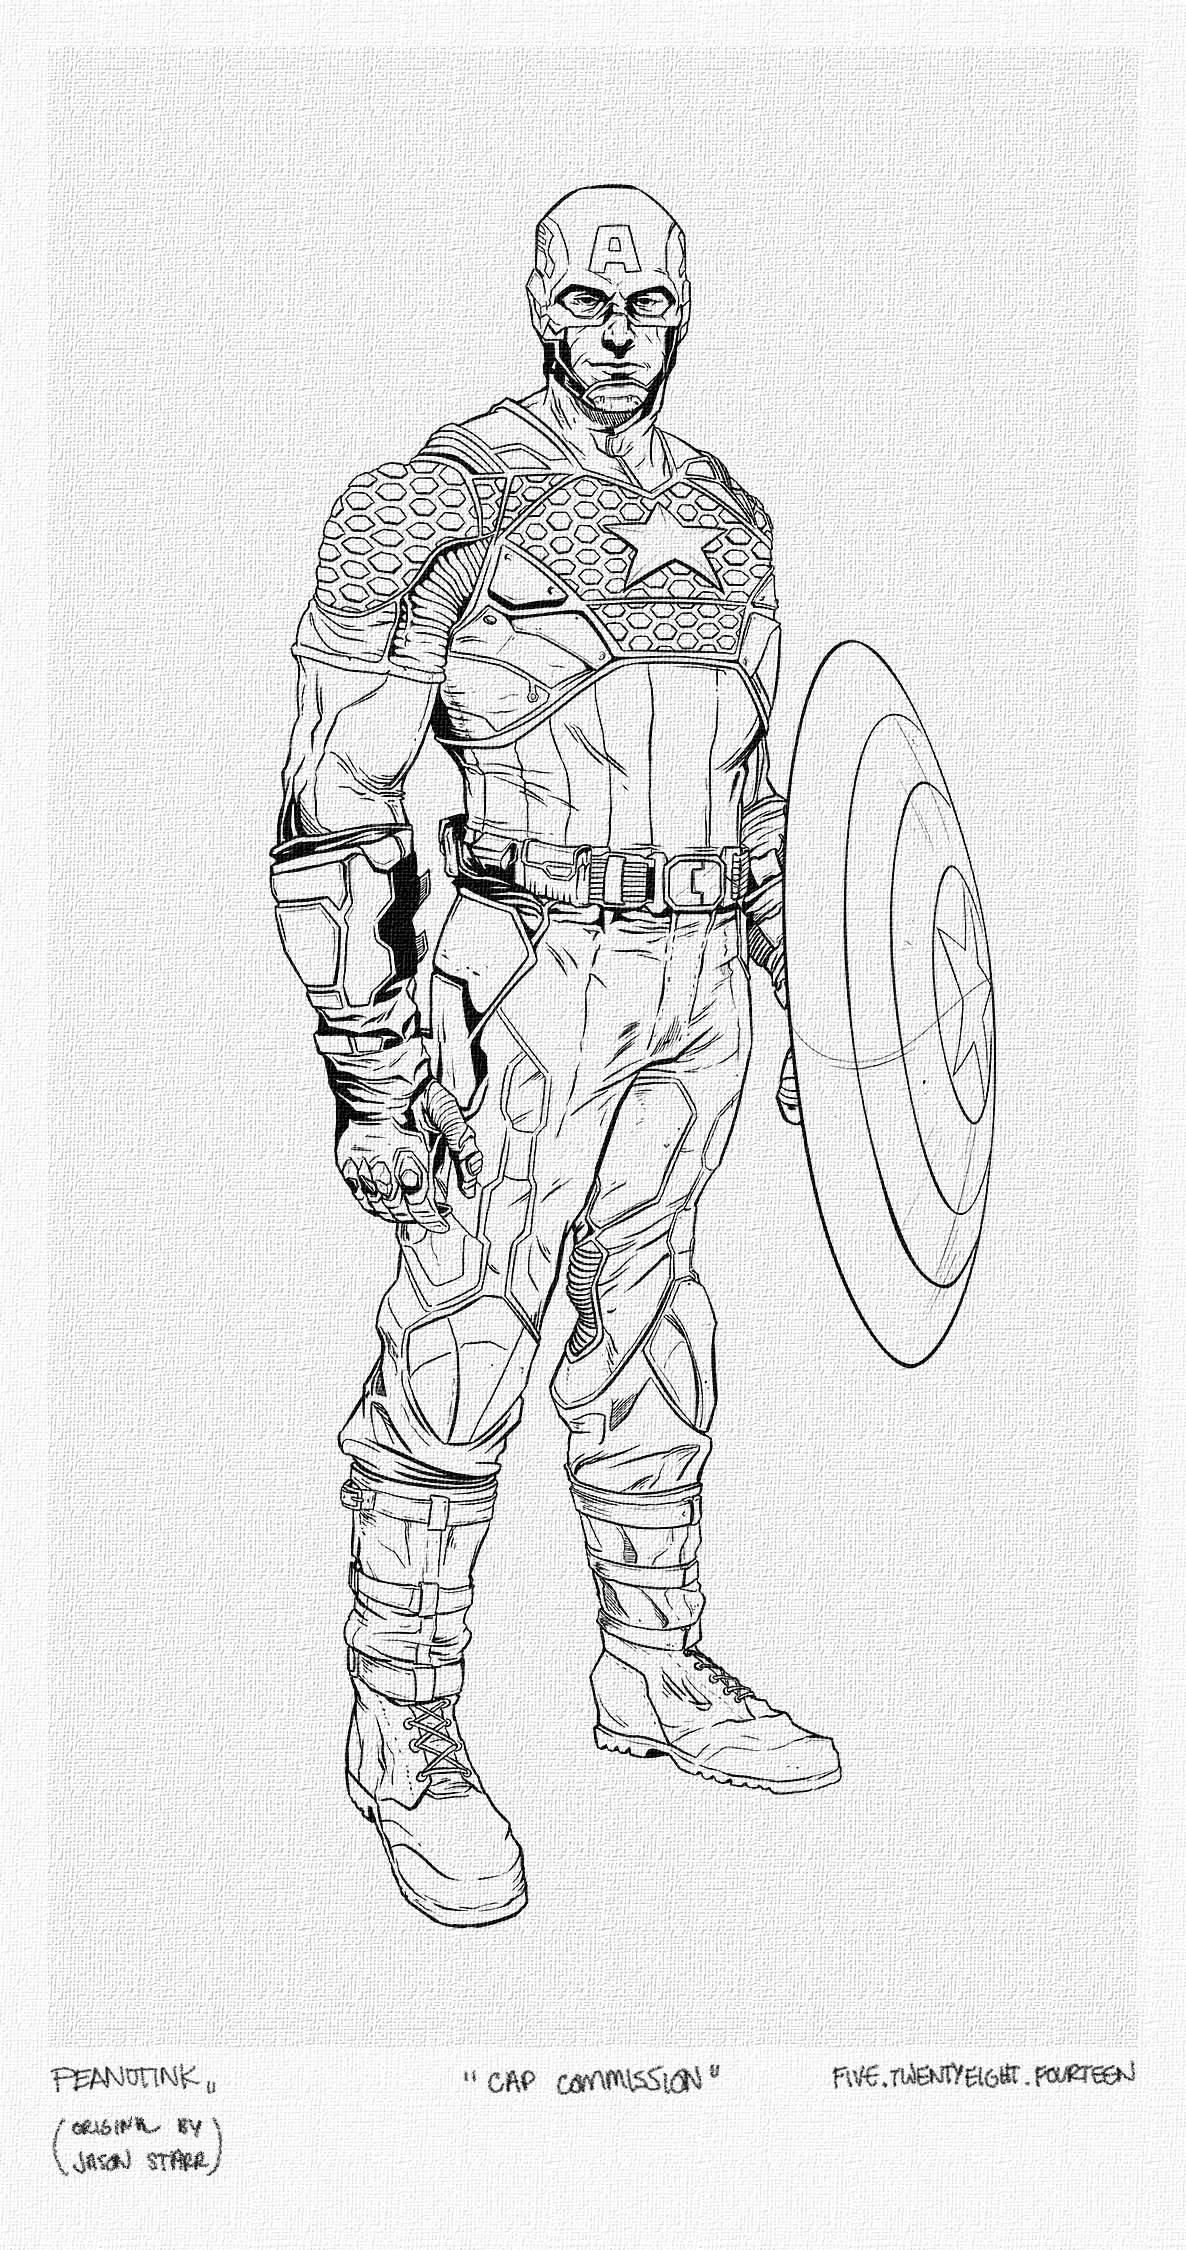 """...weekly ink #20 - """"cap commission"""" - original by Jason Starr..."""